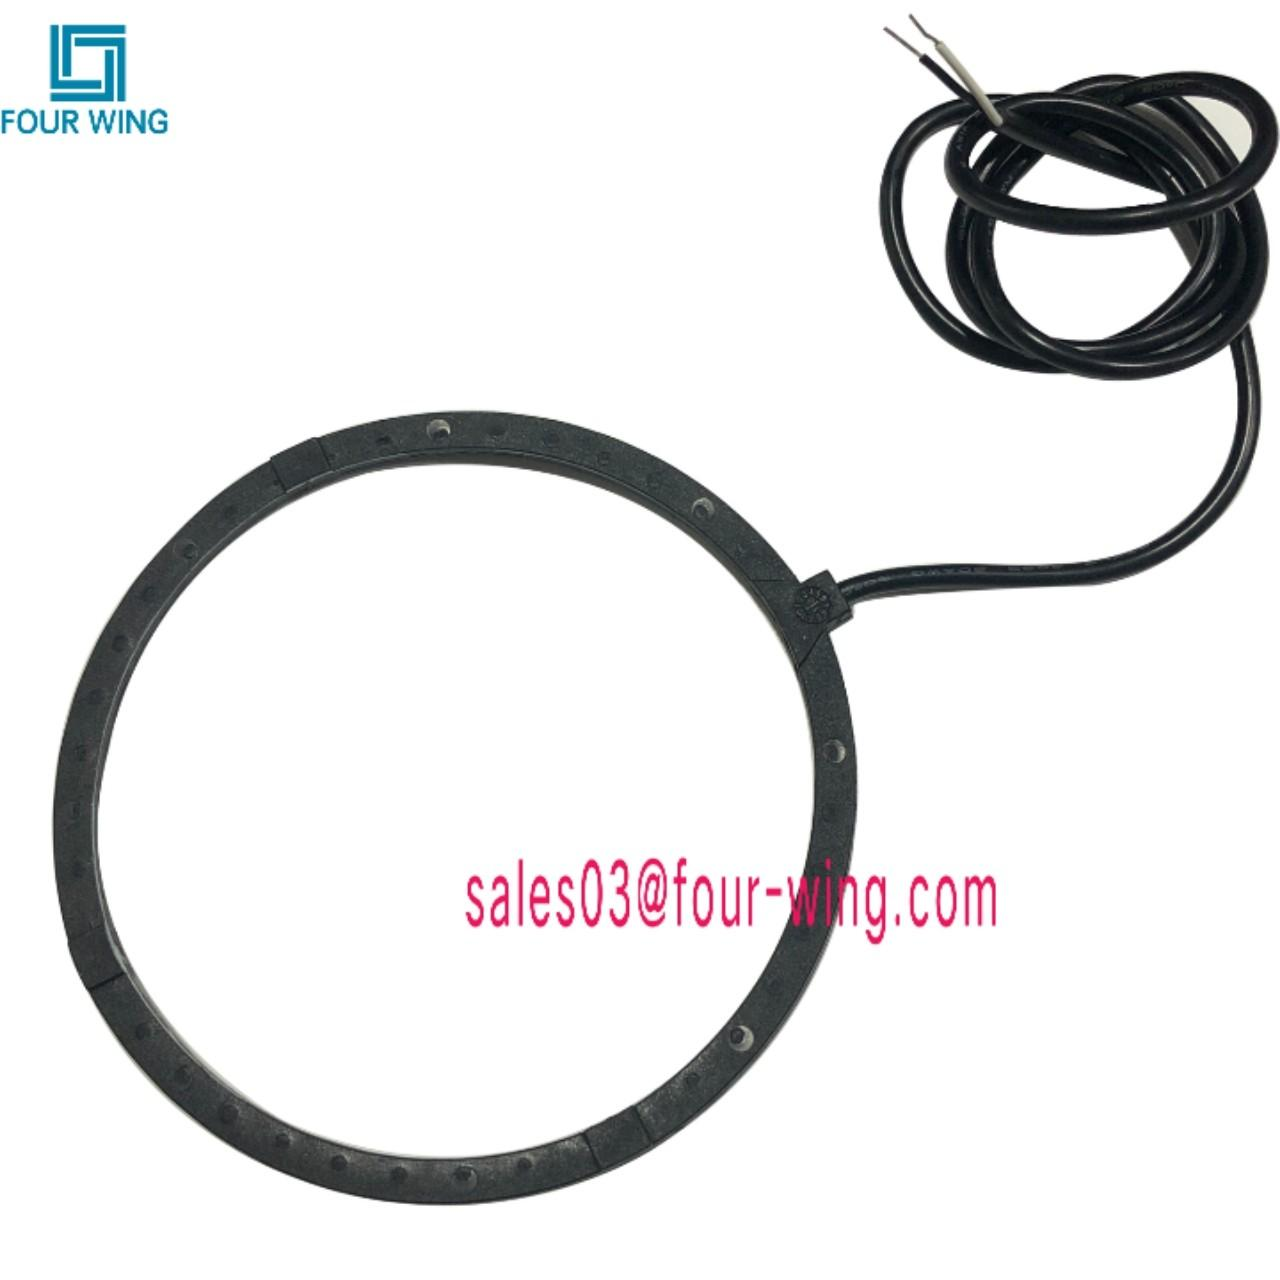 Factory OEM RFID reader tag Anti-theft coil wireless charger coil pasive tag molded coil reader car station charger coil for sale